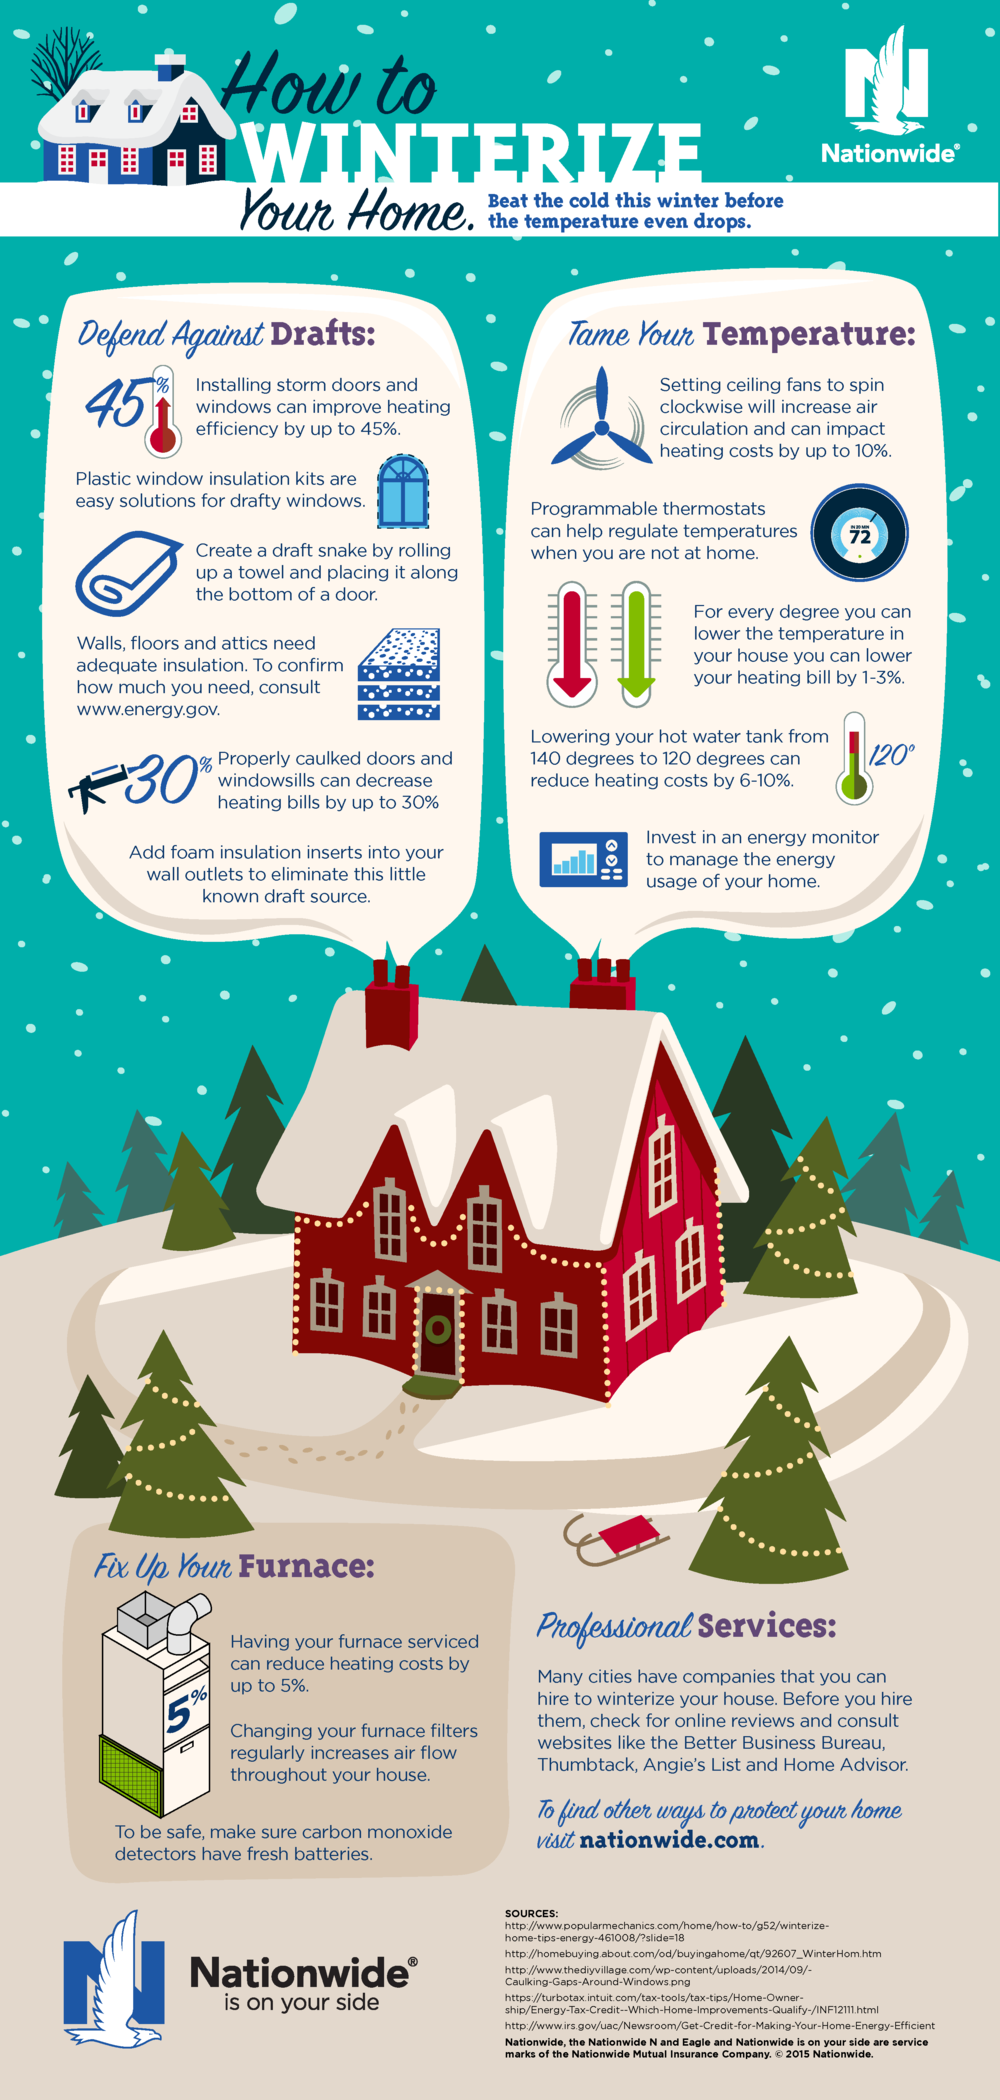 winterize-a-home-infographic.png